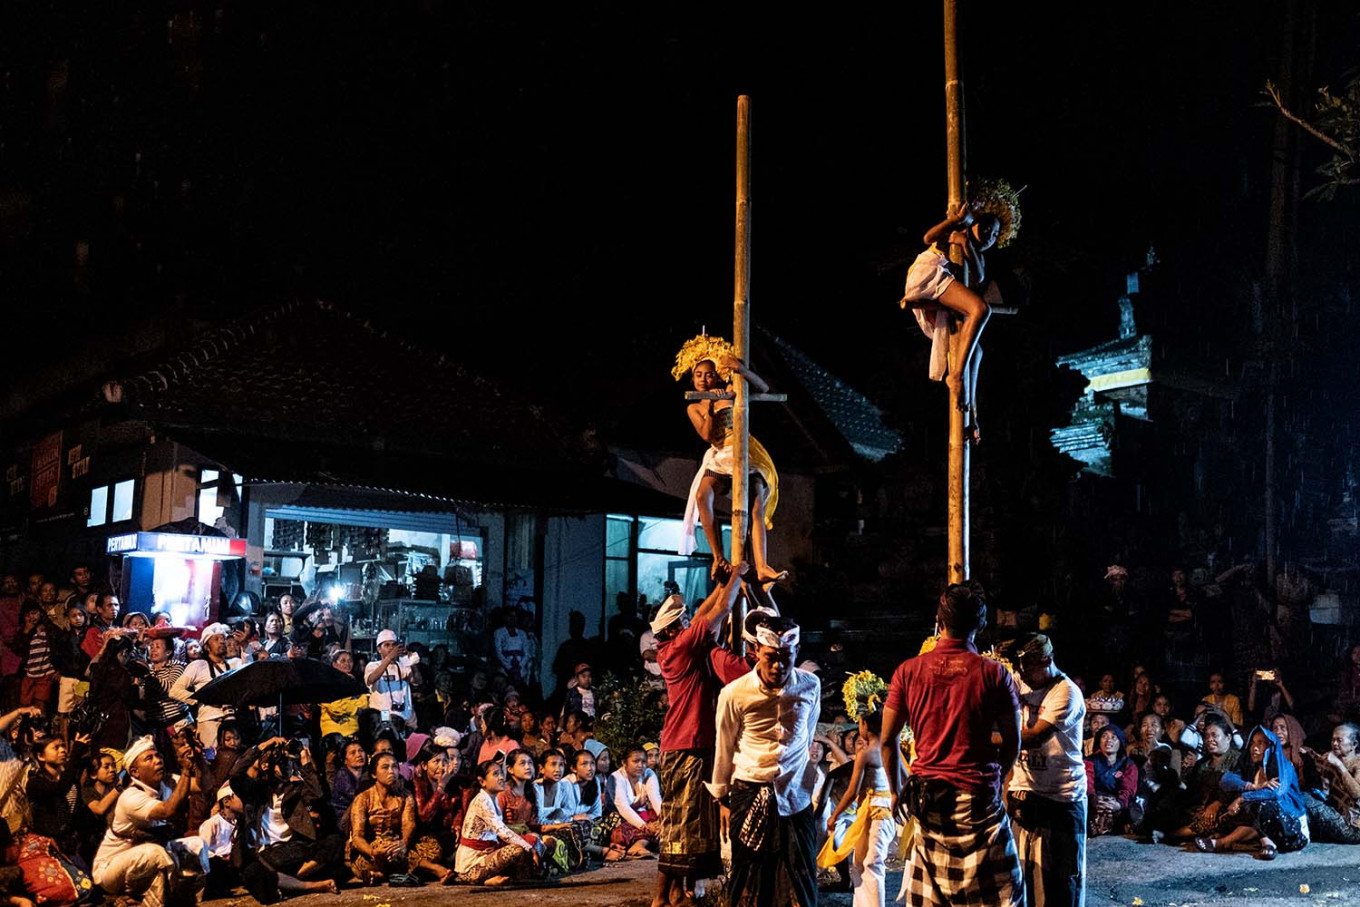 Two dancers climb up bamboo poles during the dance. JP/Agung Parameswara